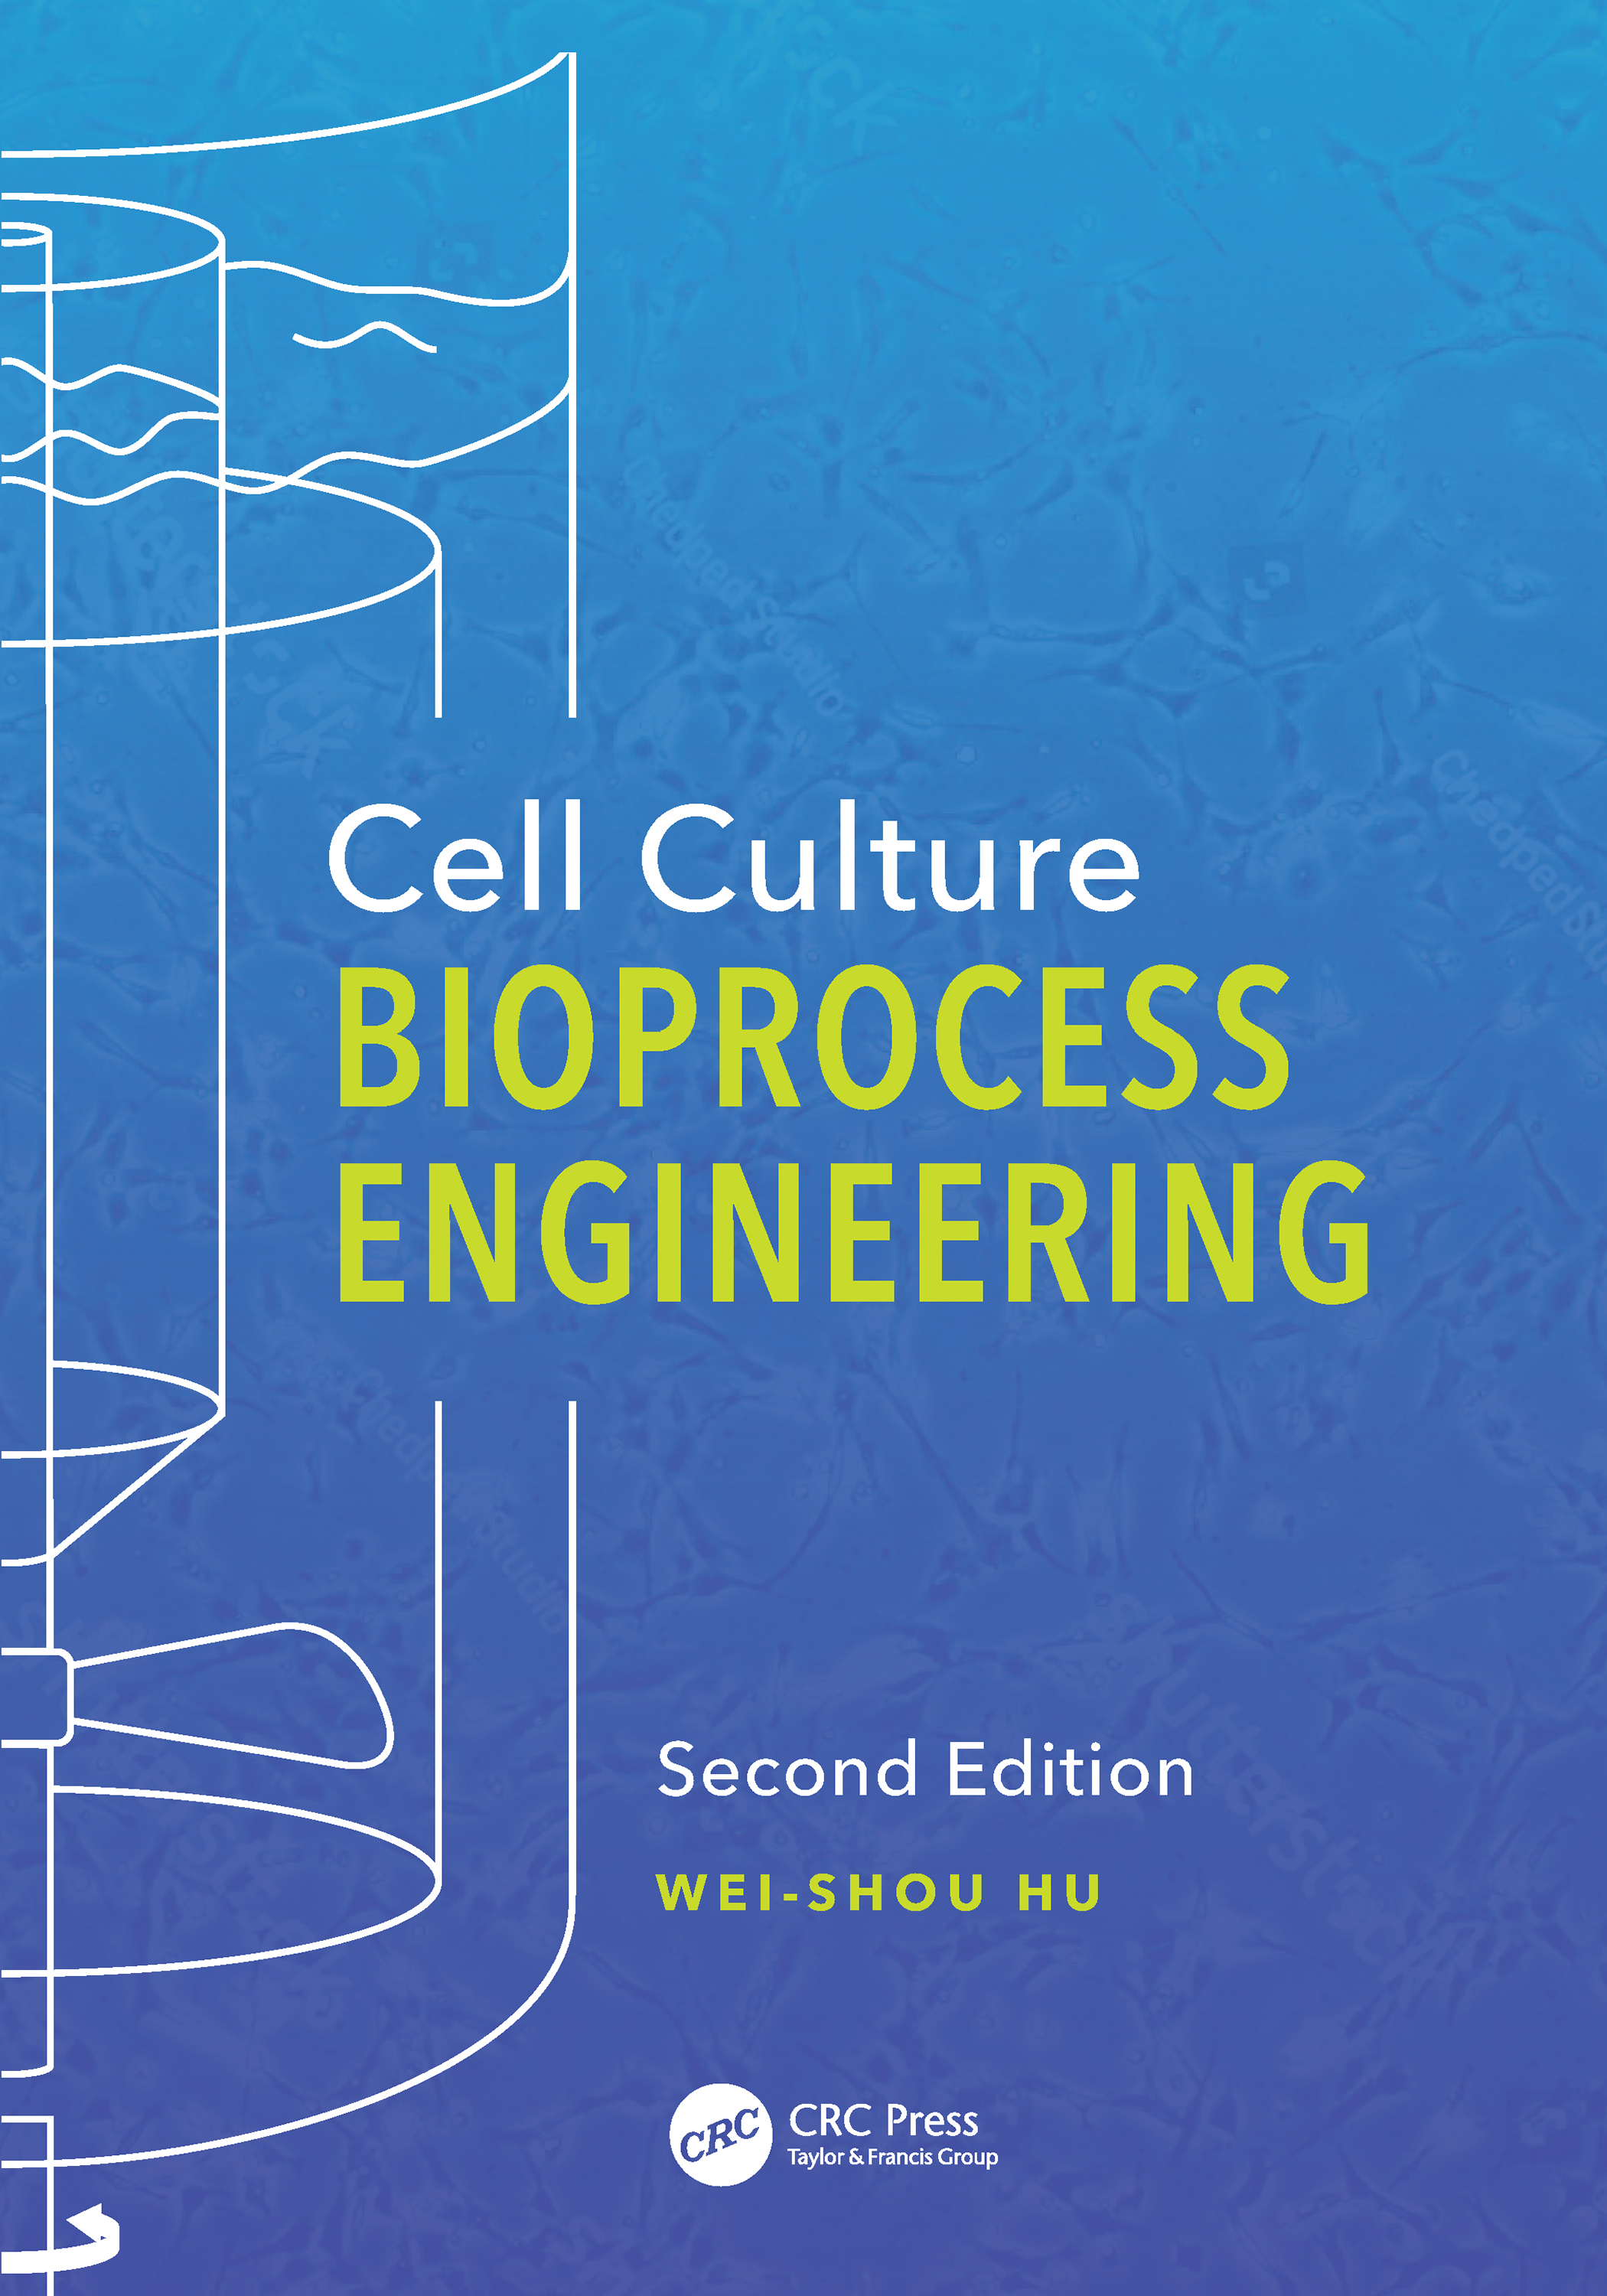 Cell Culture Bioprocess Engineering, Second Edition book cover